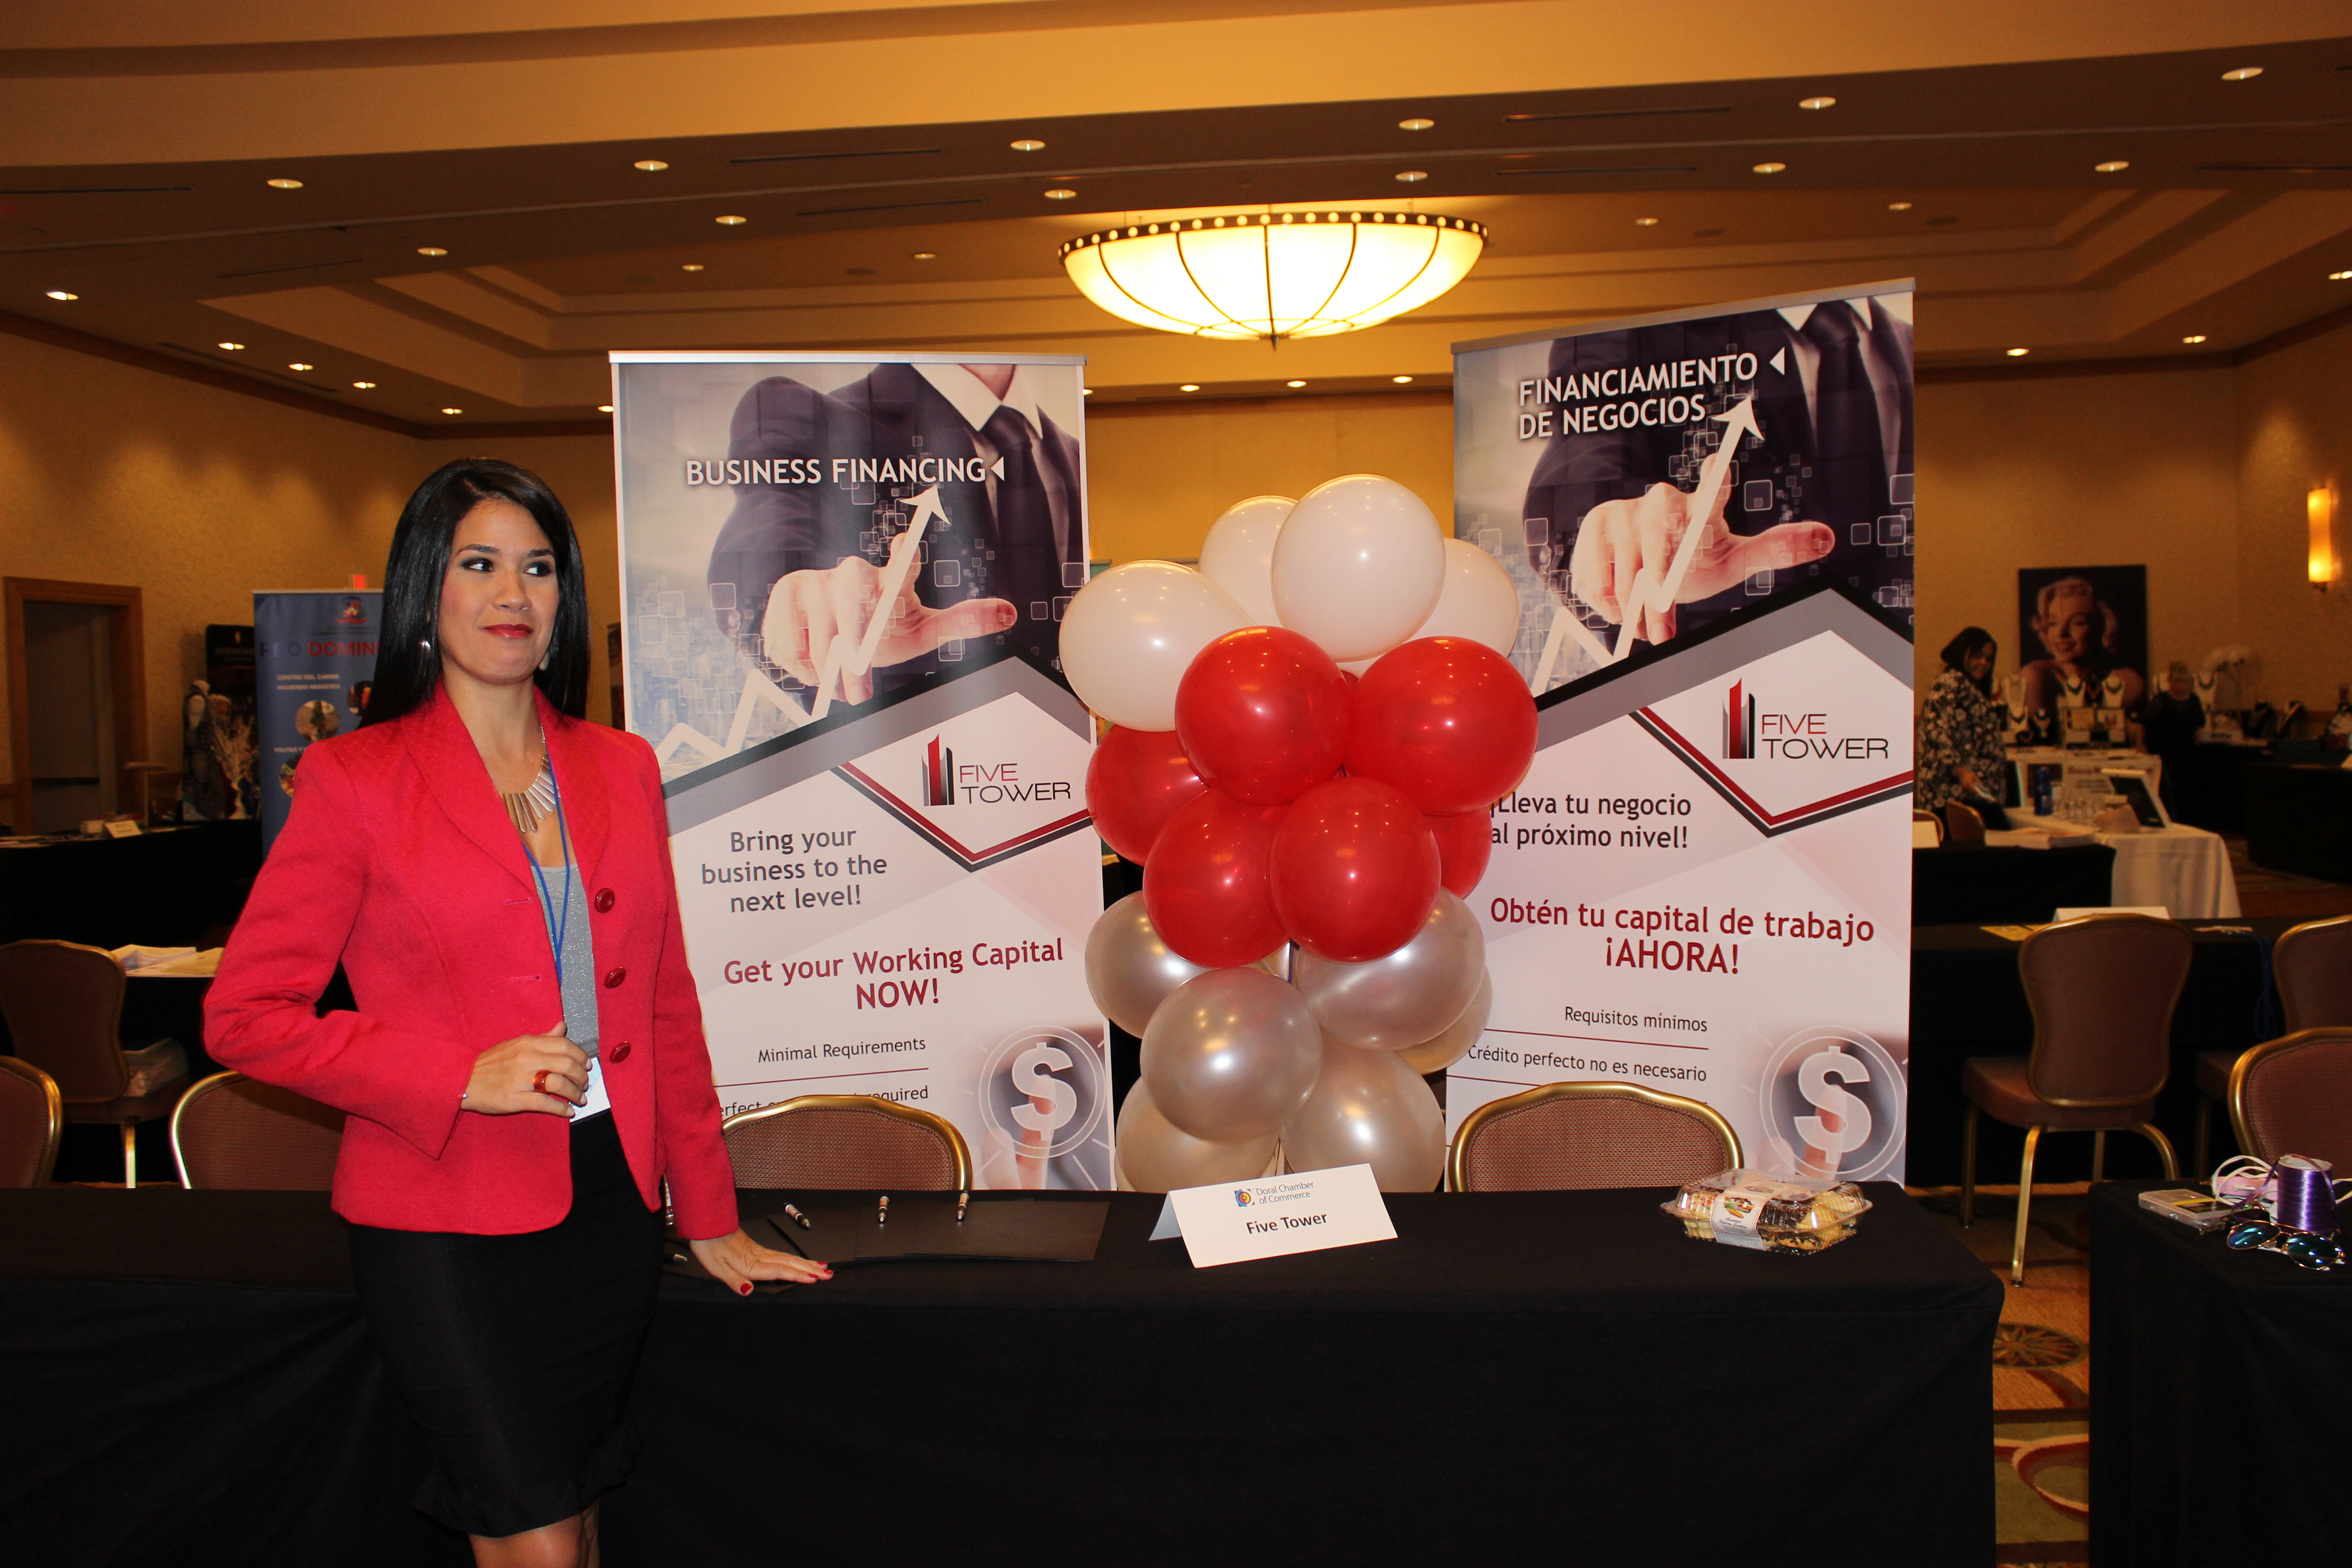 Five Tower representing business in ExpoMiami 2018 hosted by the Doral Chamber of Commerce.